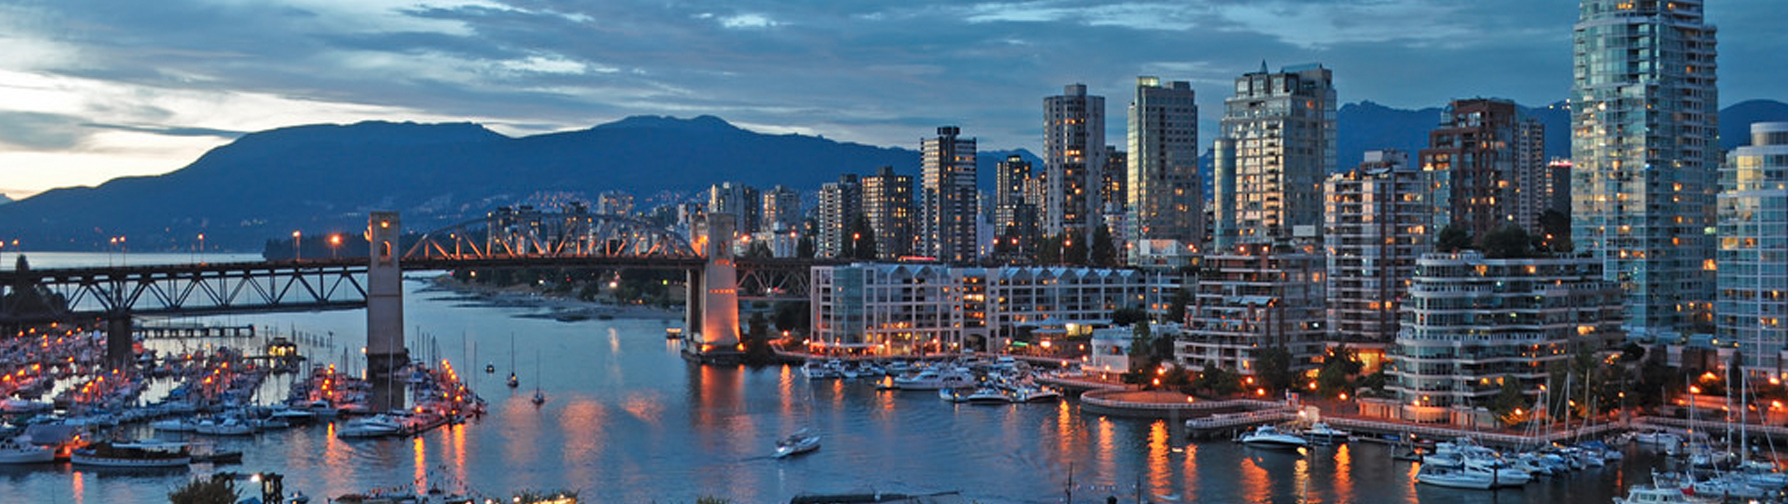 The Docks of Vancouver in British Columbia, Canada image